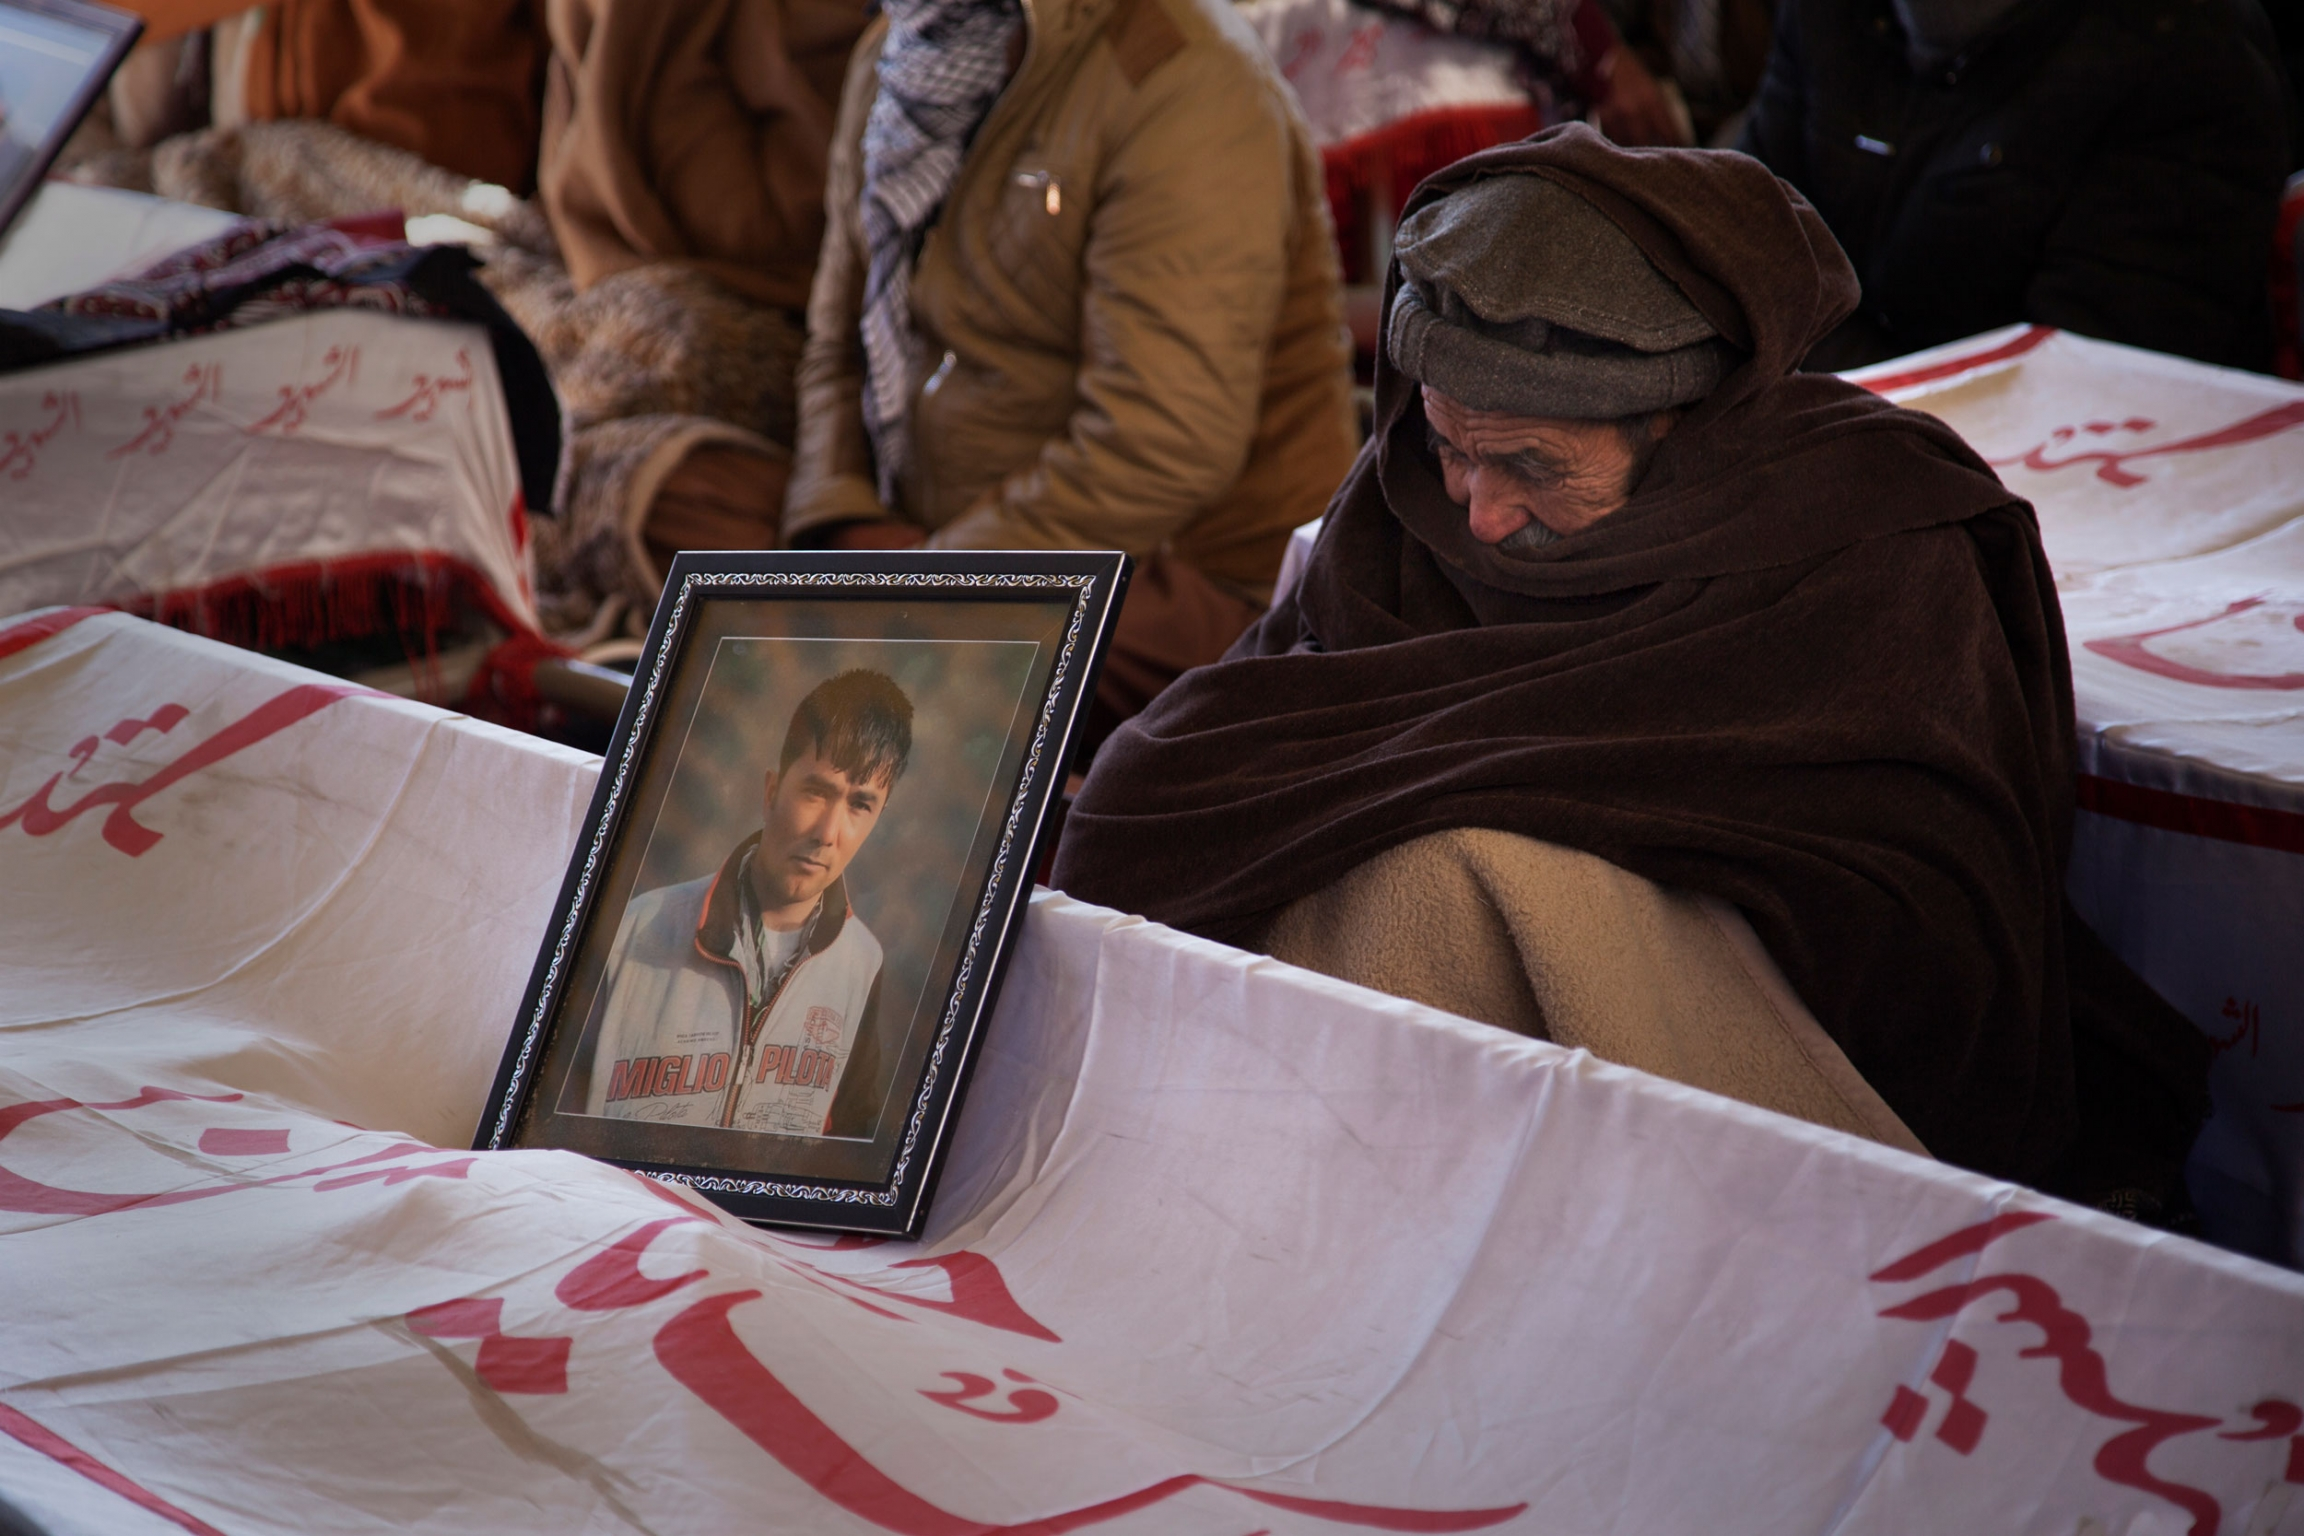 Families of the slain Hazaras staged a sit-in in protest to repeated attacks on their community in Pakistan.